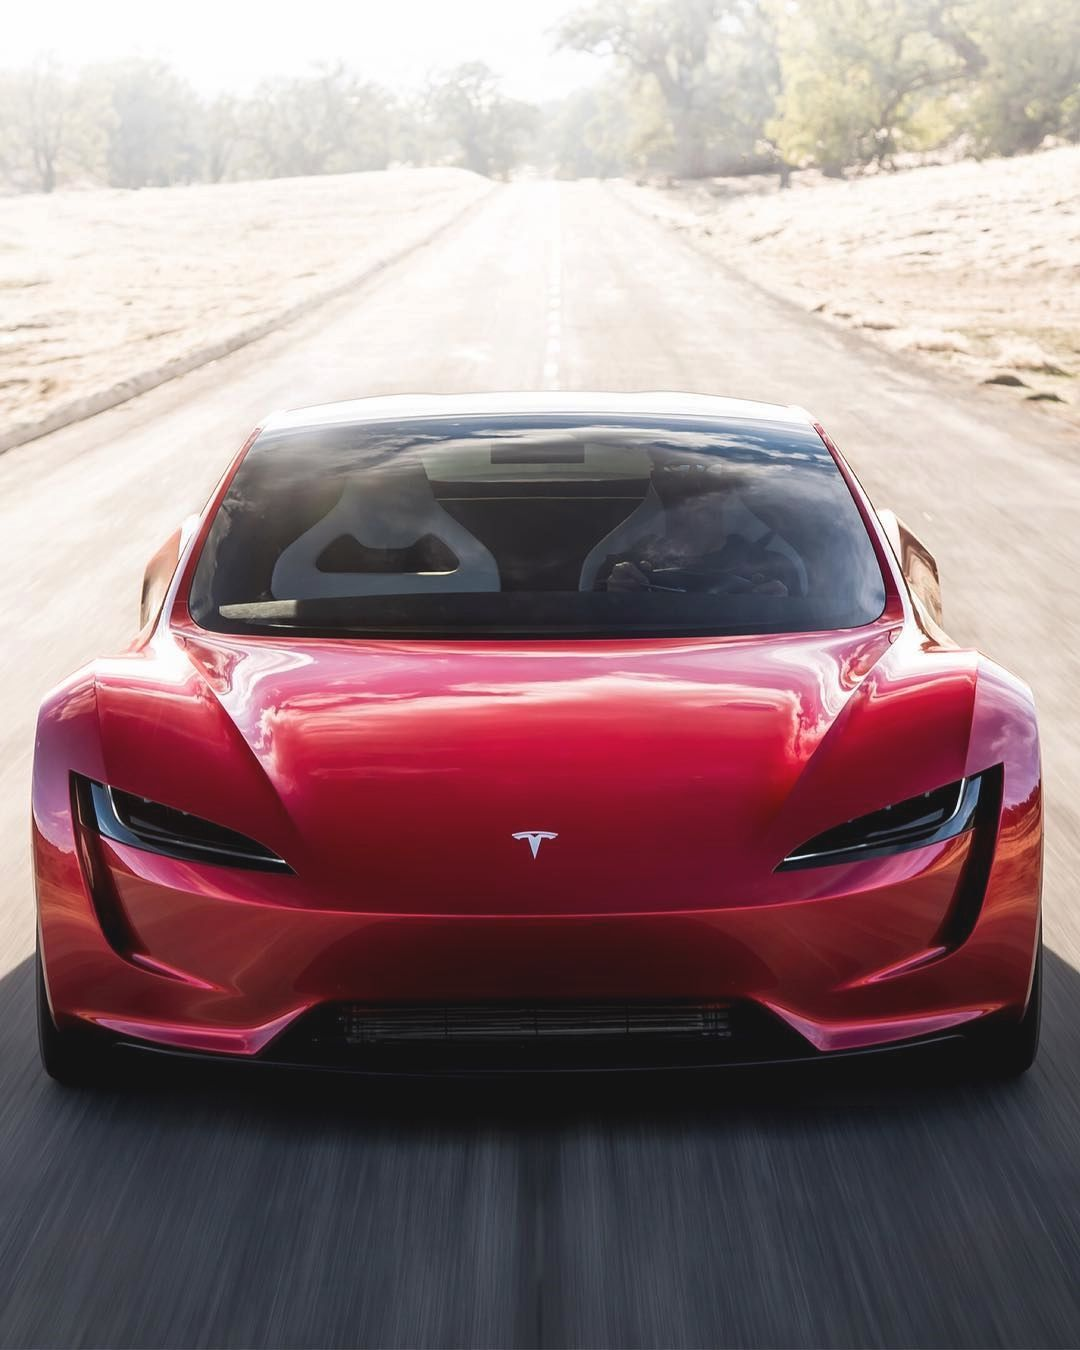 See More About The Tesla Roadster Through The Link In Our Bio Teslamotors Blacklist Tesla Roadster Repost Tesla Roadster New Tesla Roadster Roadsters